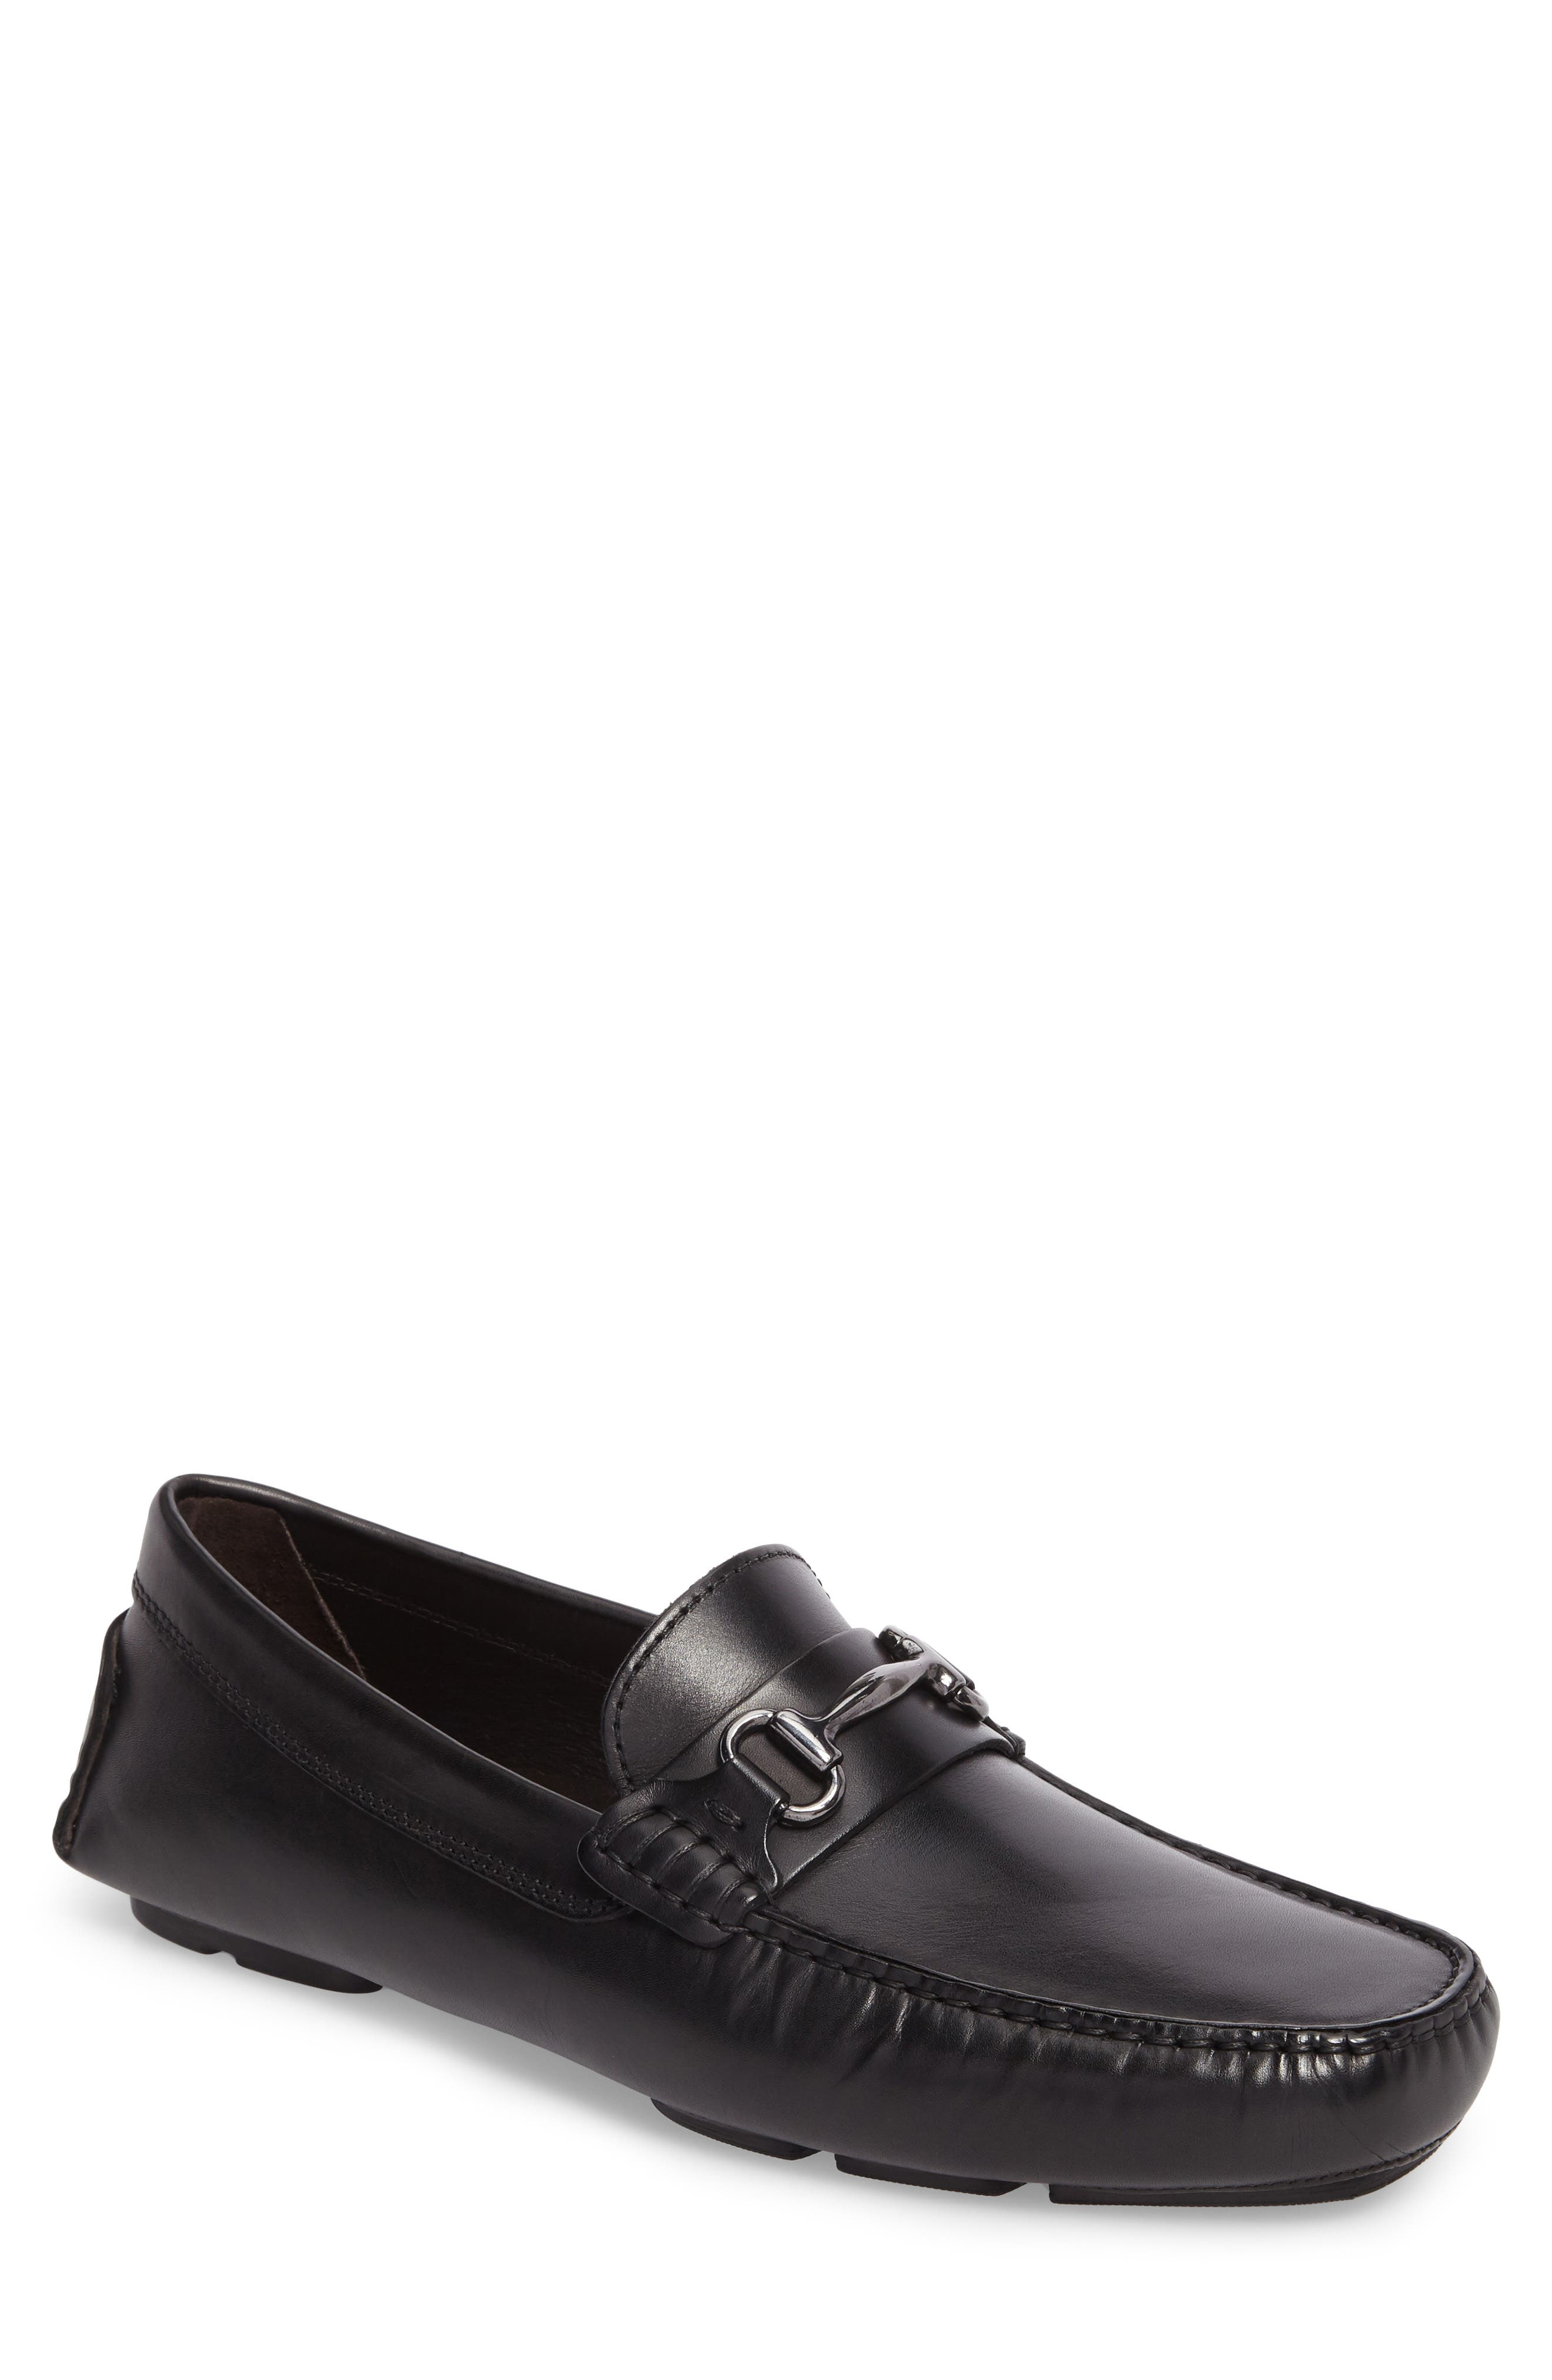 To Boot New York Del Amo Driving Shoe, Black